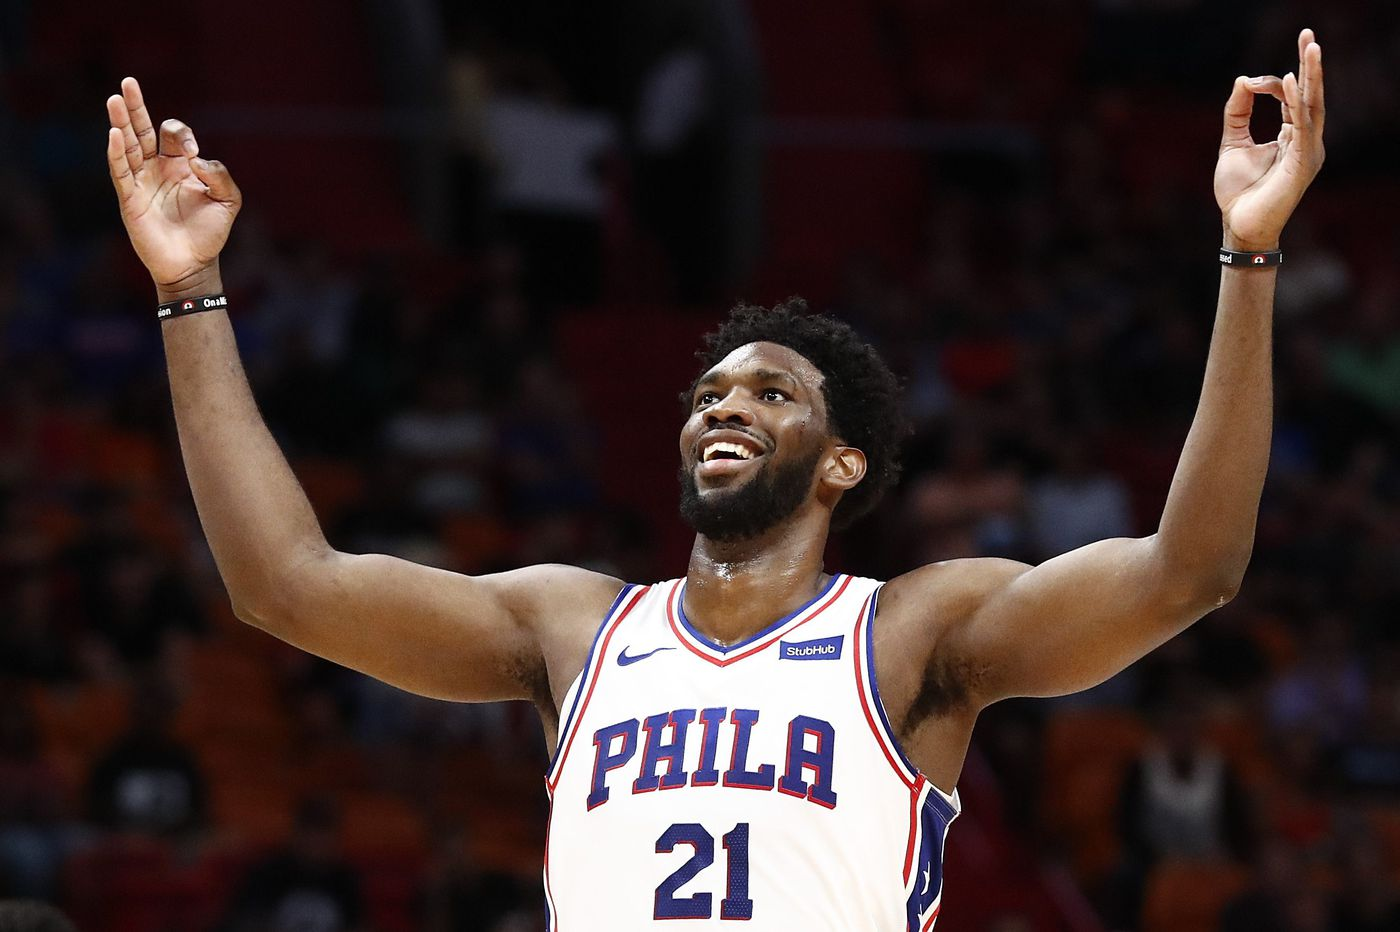 When the Sixers' Joel Embiid doesn't score 35 points, he